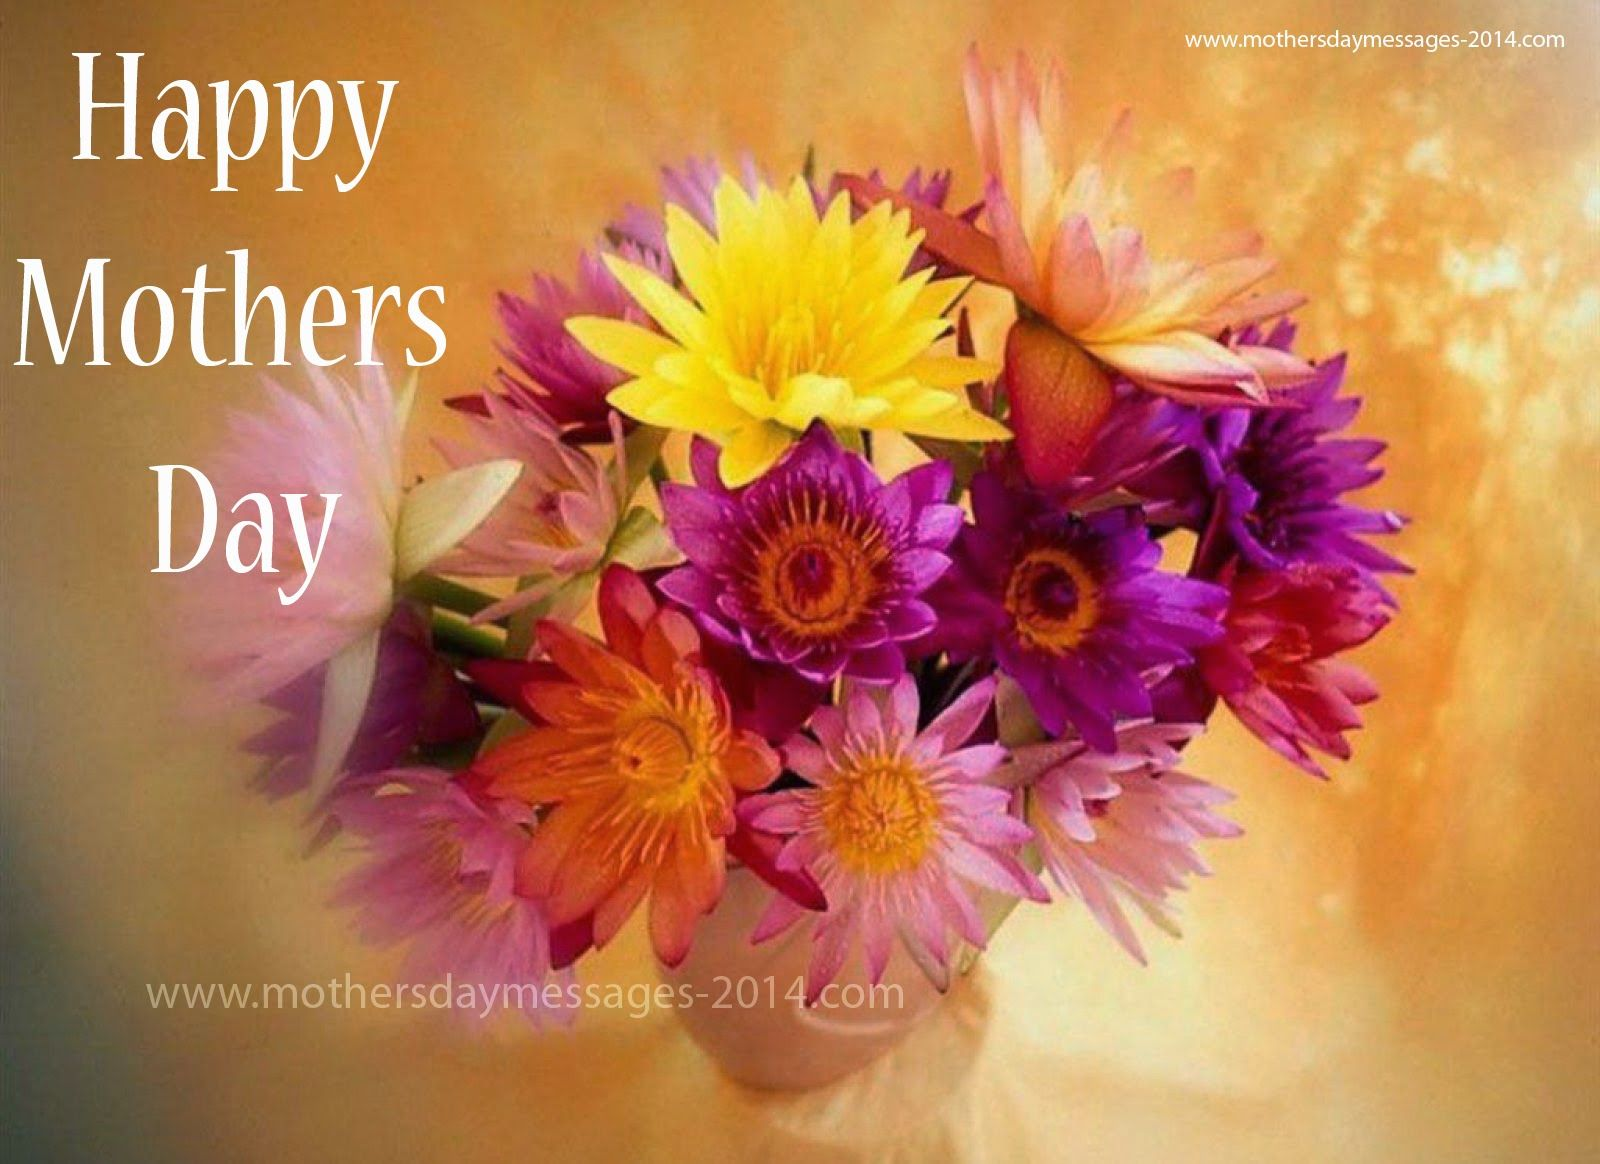 Happy Moother S Day Songs Lyrics List Free Download Beautiful Flowers Beautiful Flowers Images Beautiful Flowers Wallpapers